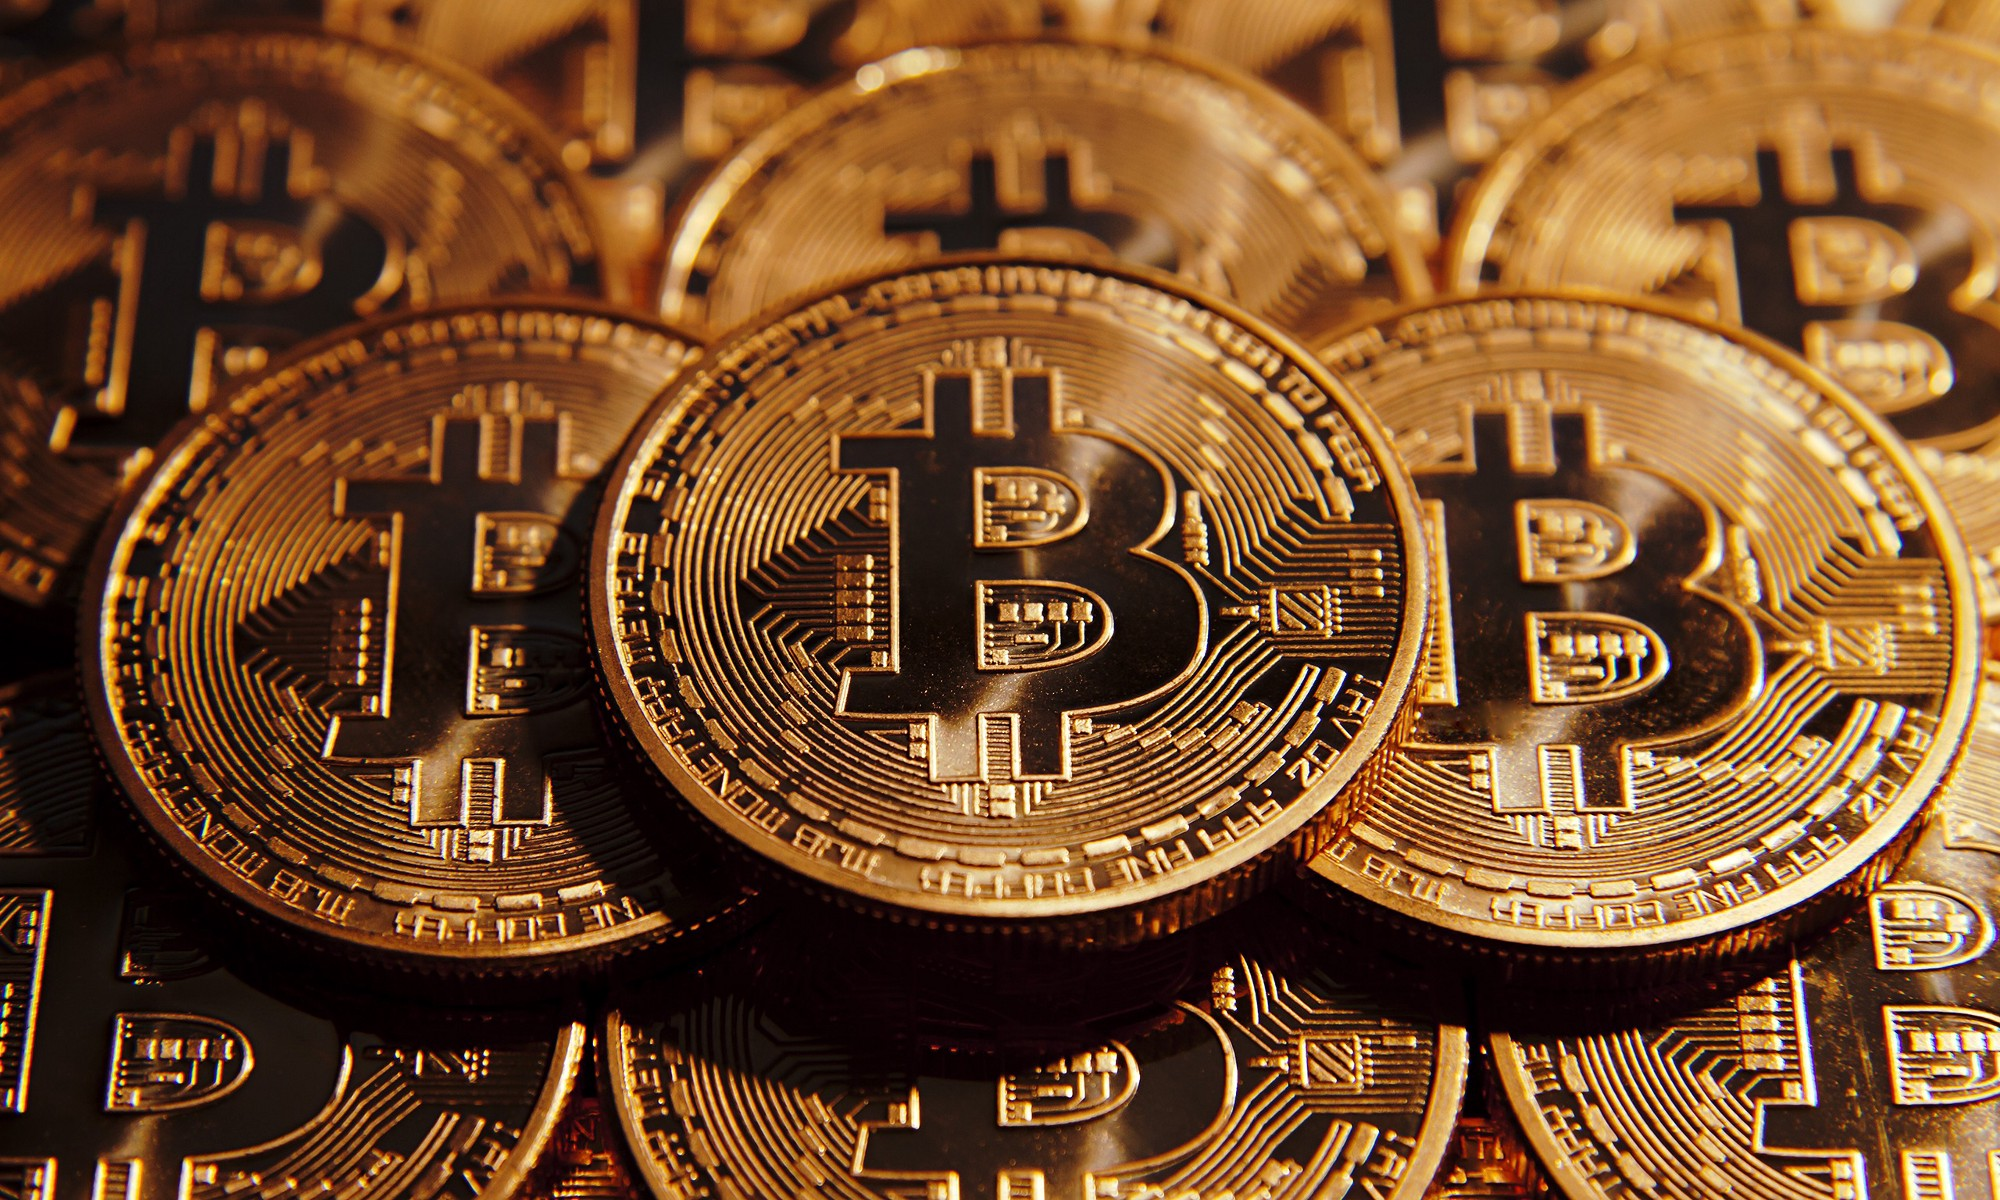 Bitcoin Above $10,000: Price Rised 10 Times In This Year